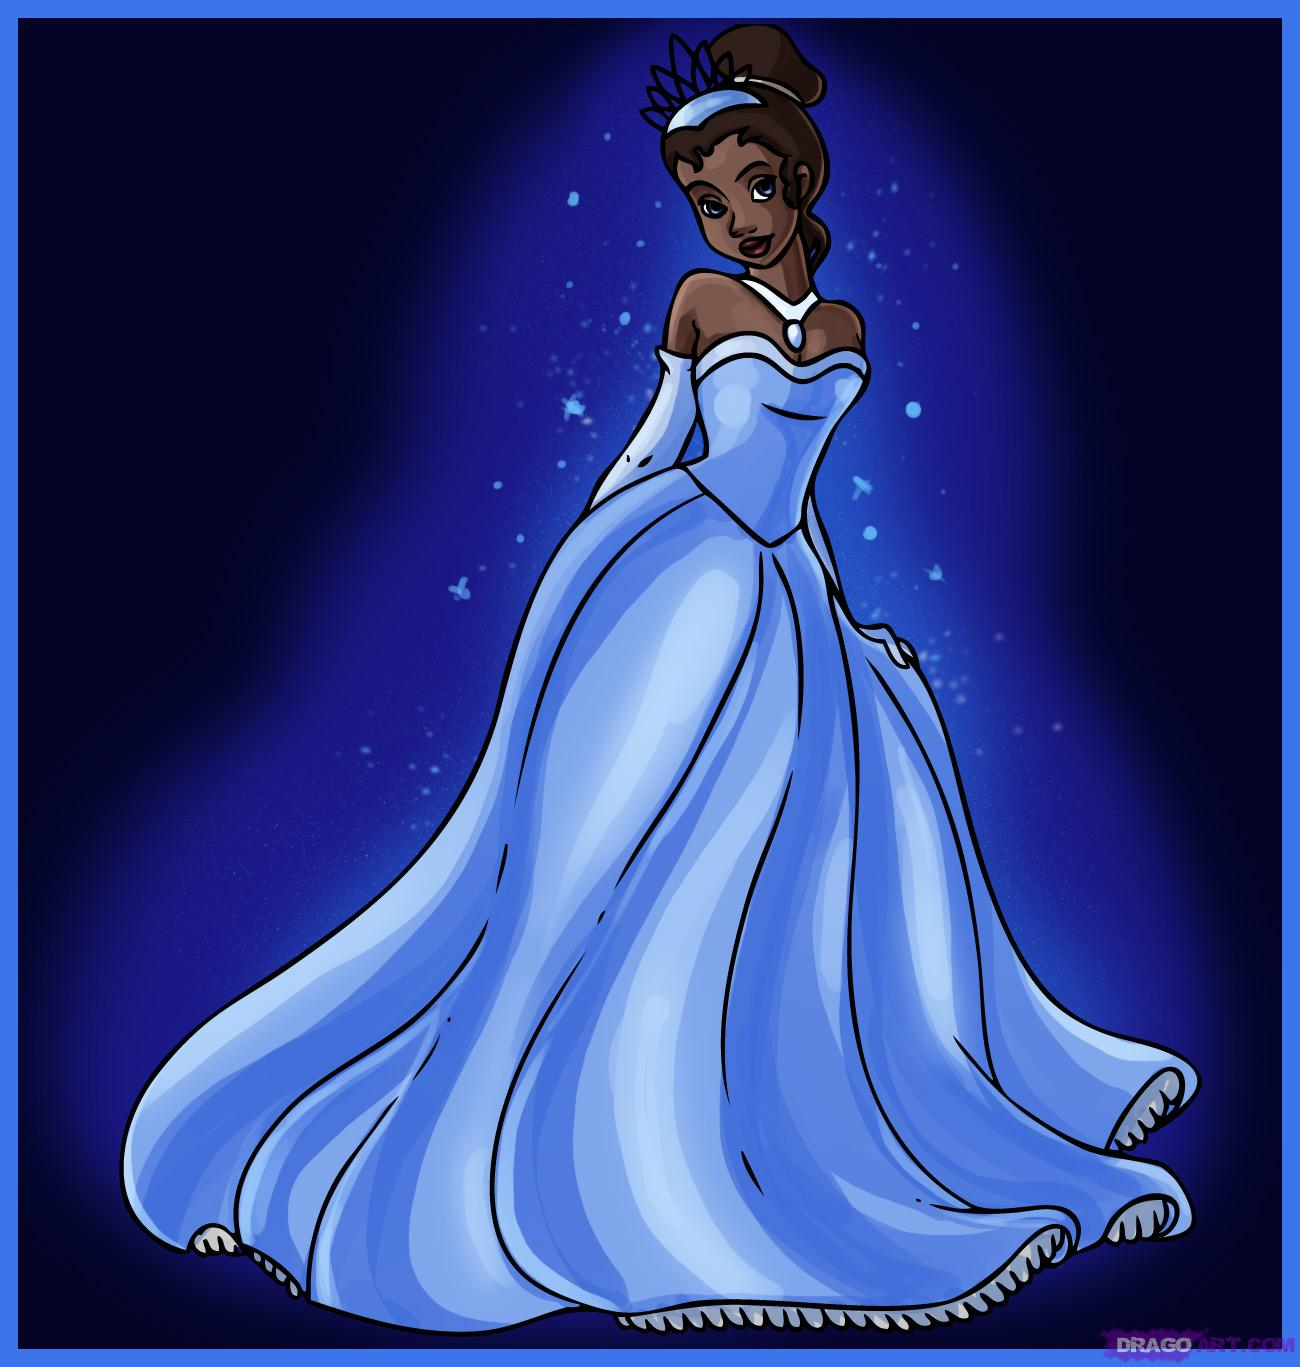 Drawn princess princess and the frog From Princess How and to